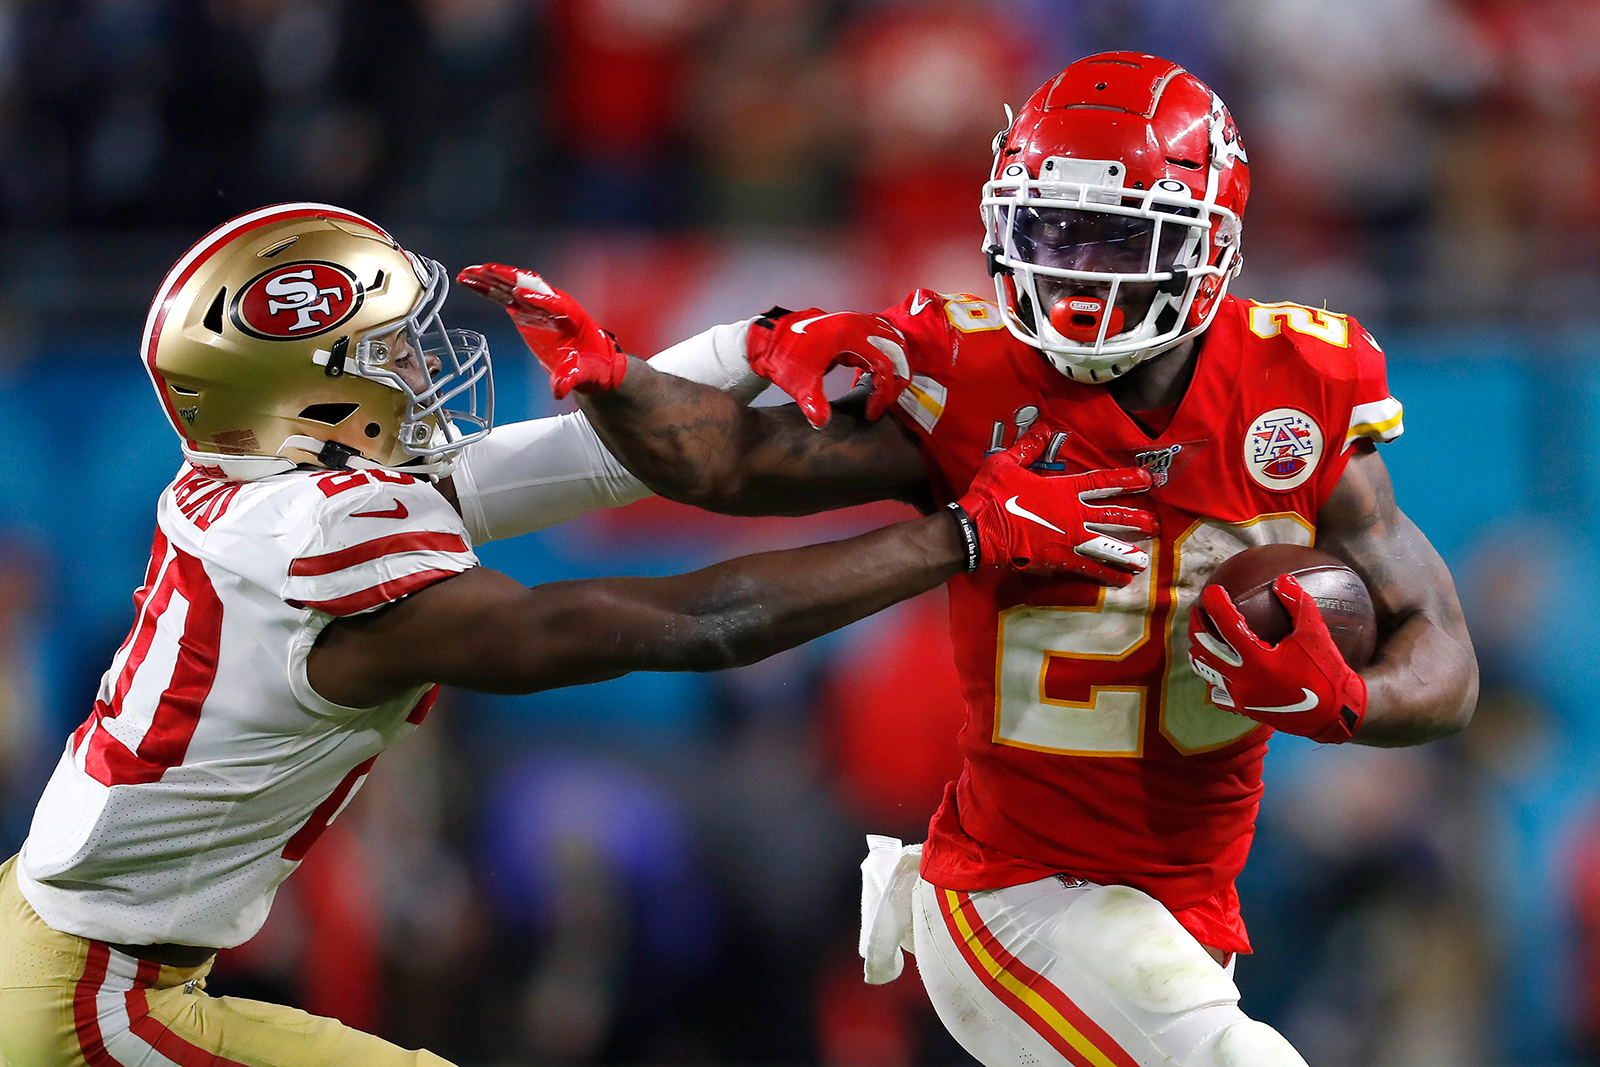 Damien Williams #26 of the Kansas City Chiefs gives a stiff arm to #20 of the San Francisco 49ers during the fourth quarter in Super Bowl LIV at Hard Rock Stadium on February 2, in Miami, Florida.